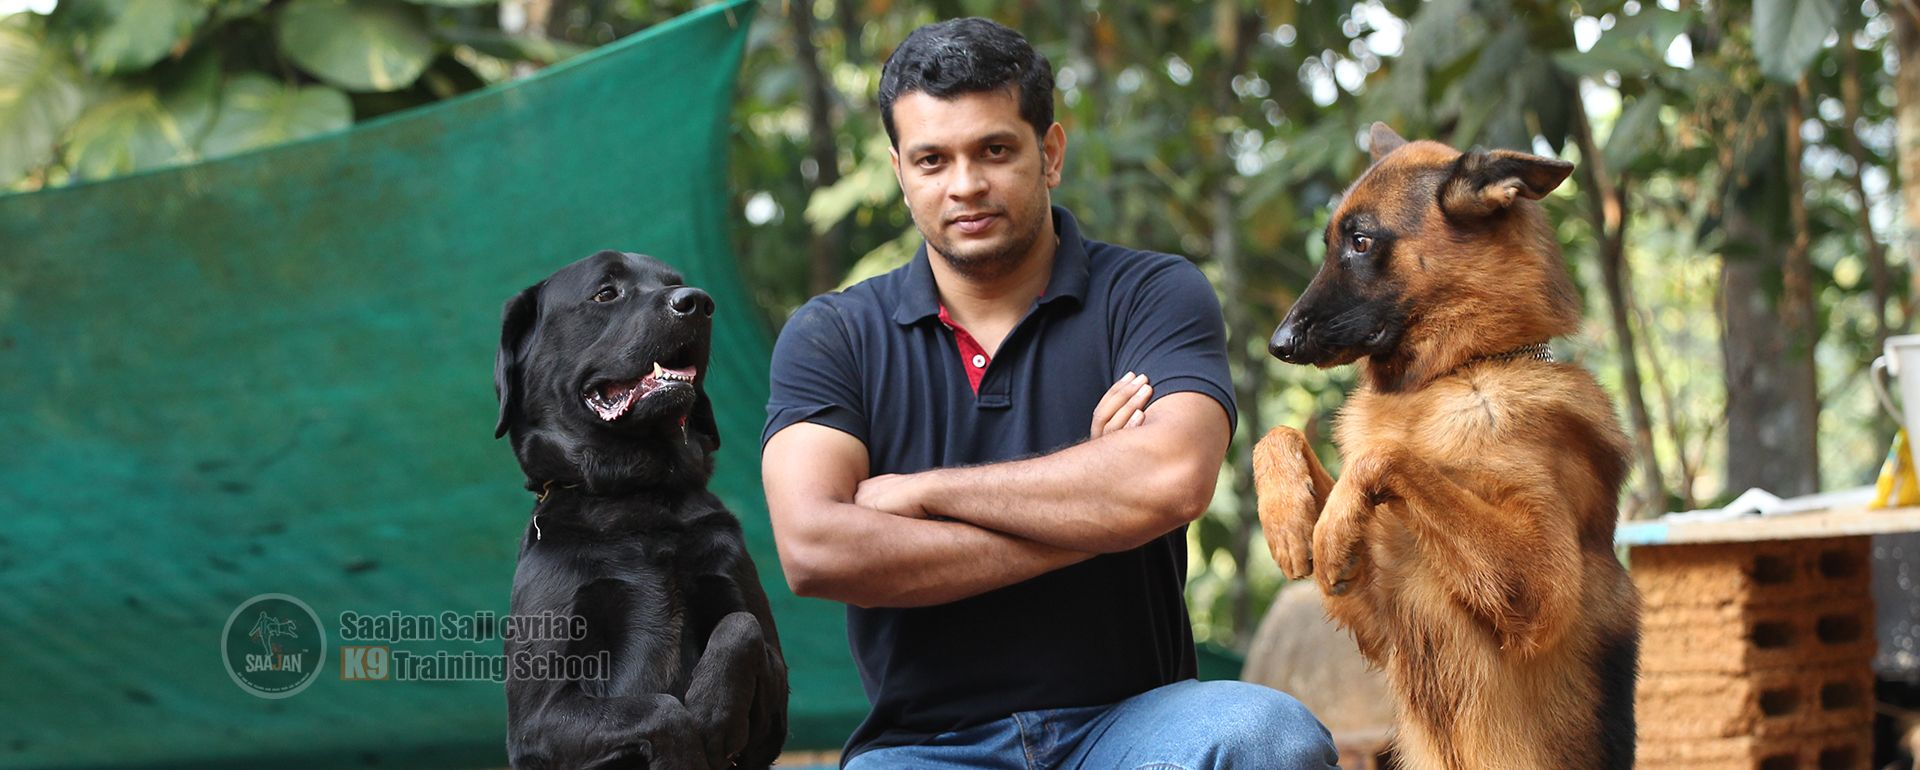 Saajan Saji Cyriac K9 School Punch Face Heavy Bone Rottweiler Puppy For Sale Price Dogs For Sale In 2020 Rottweiler Puppies Rottweiler Puppies For Sale Dogs For Sale